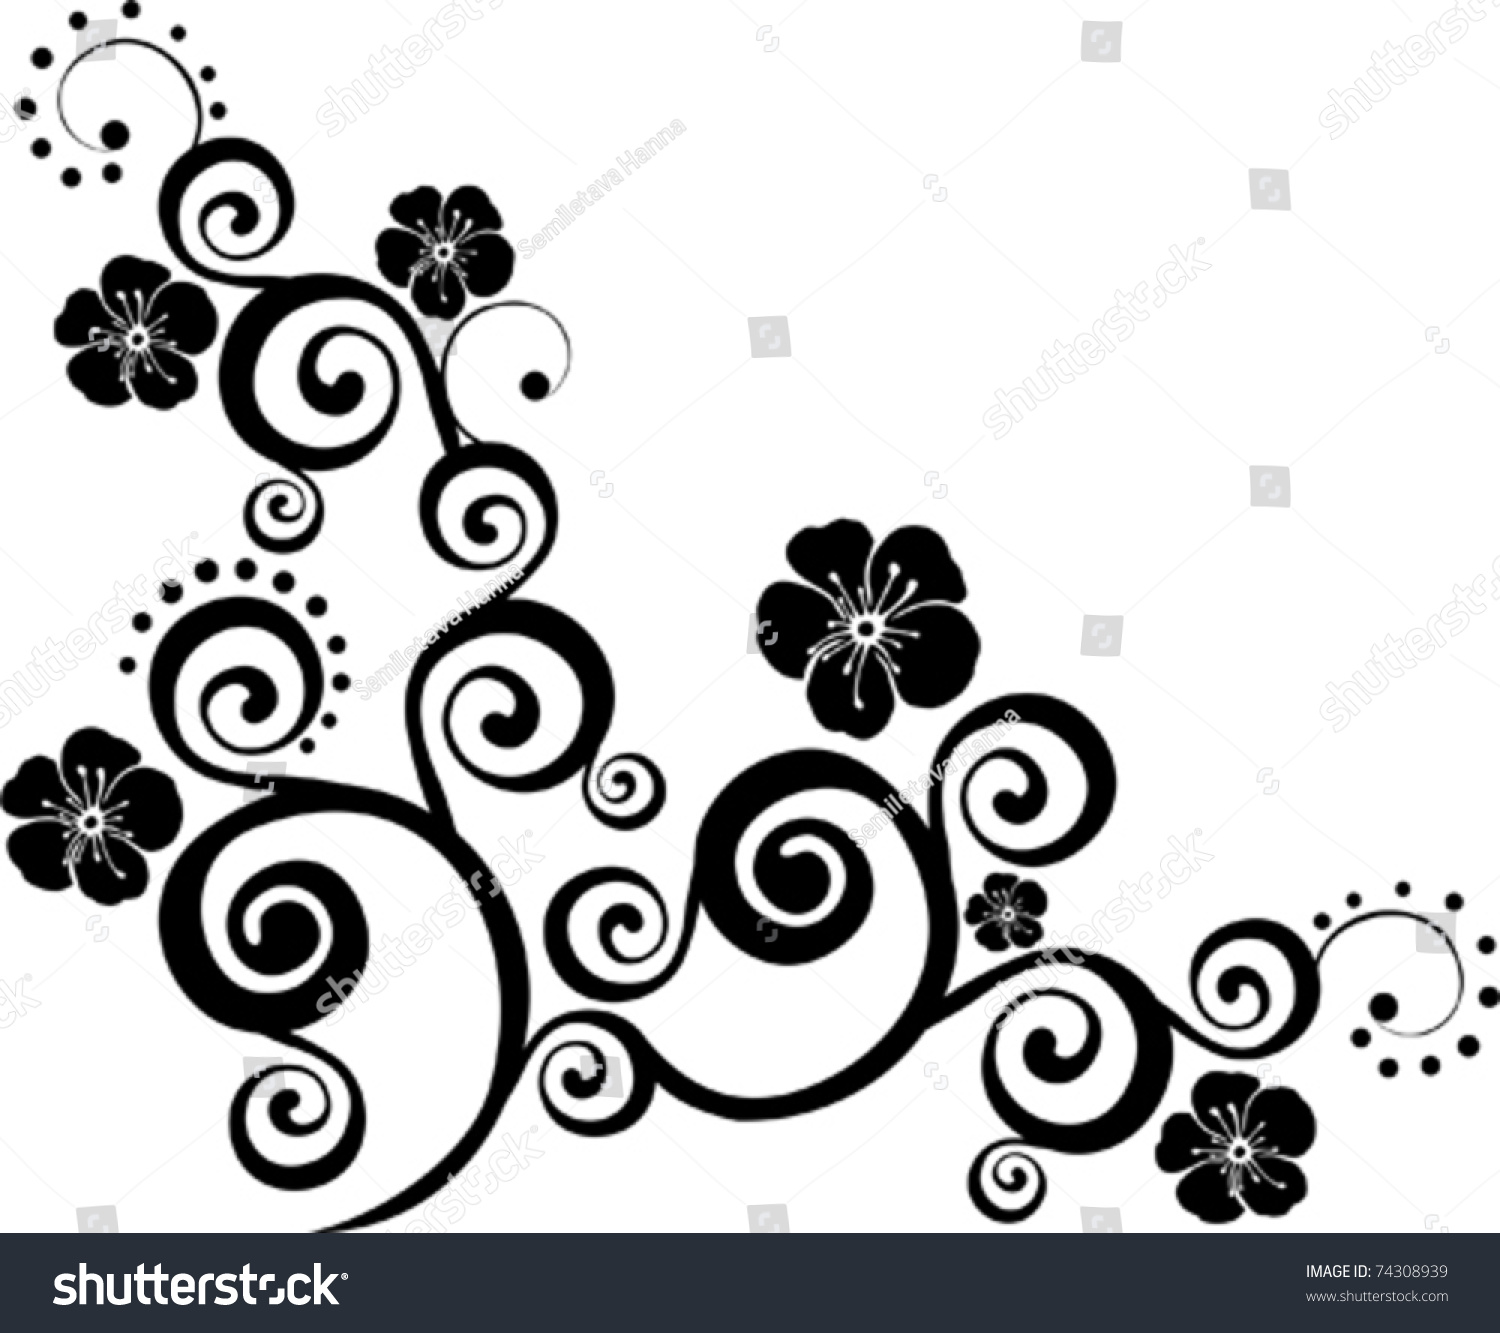 Black Flower Isolated White Background Stock Vector Shutterstock